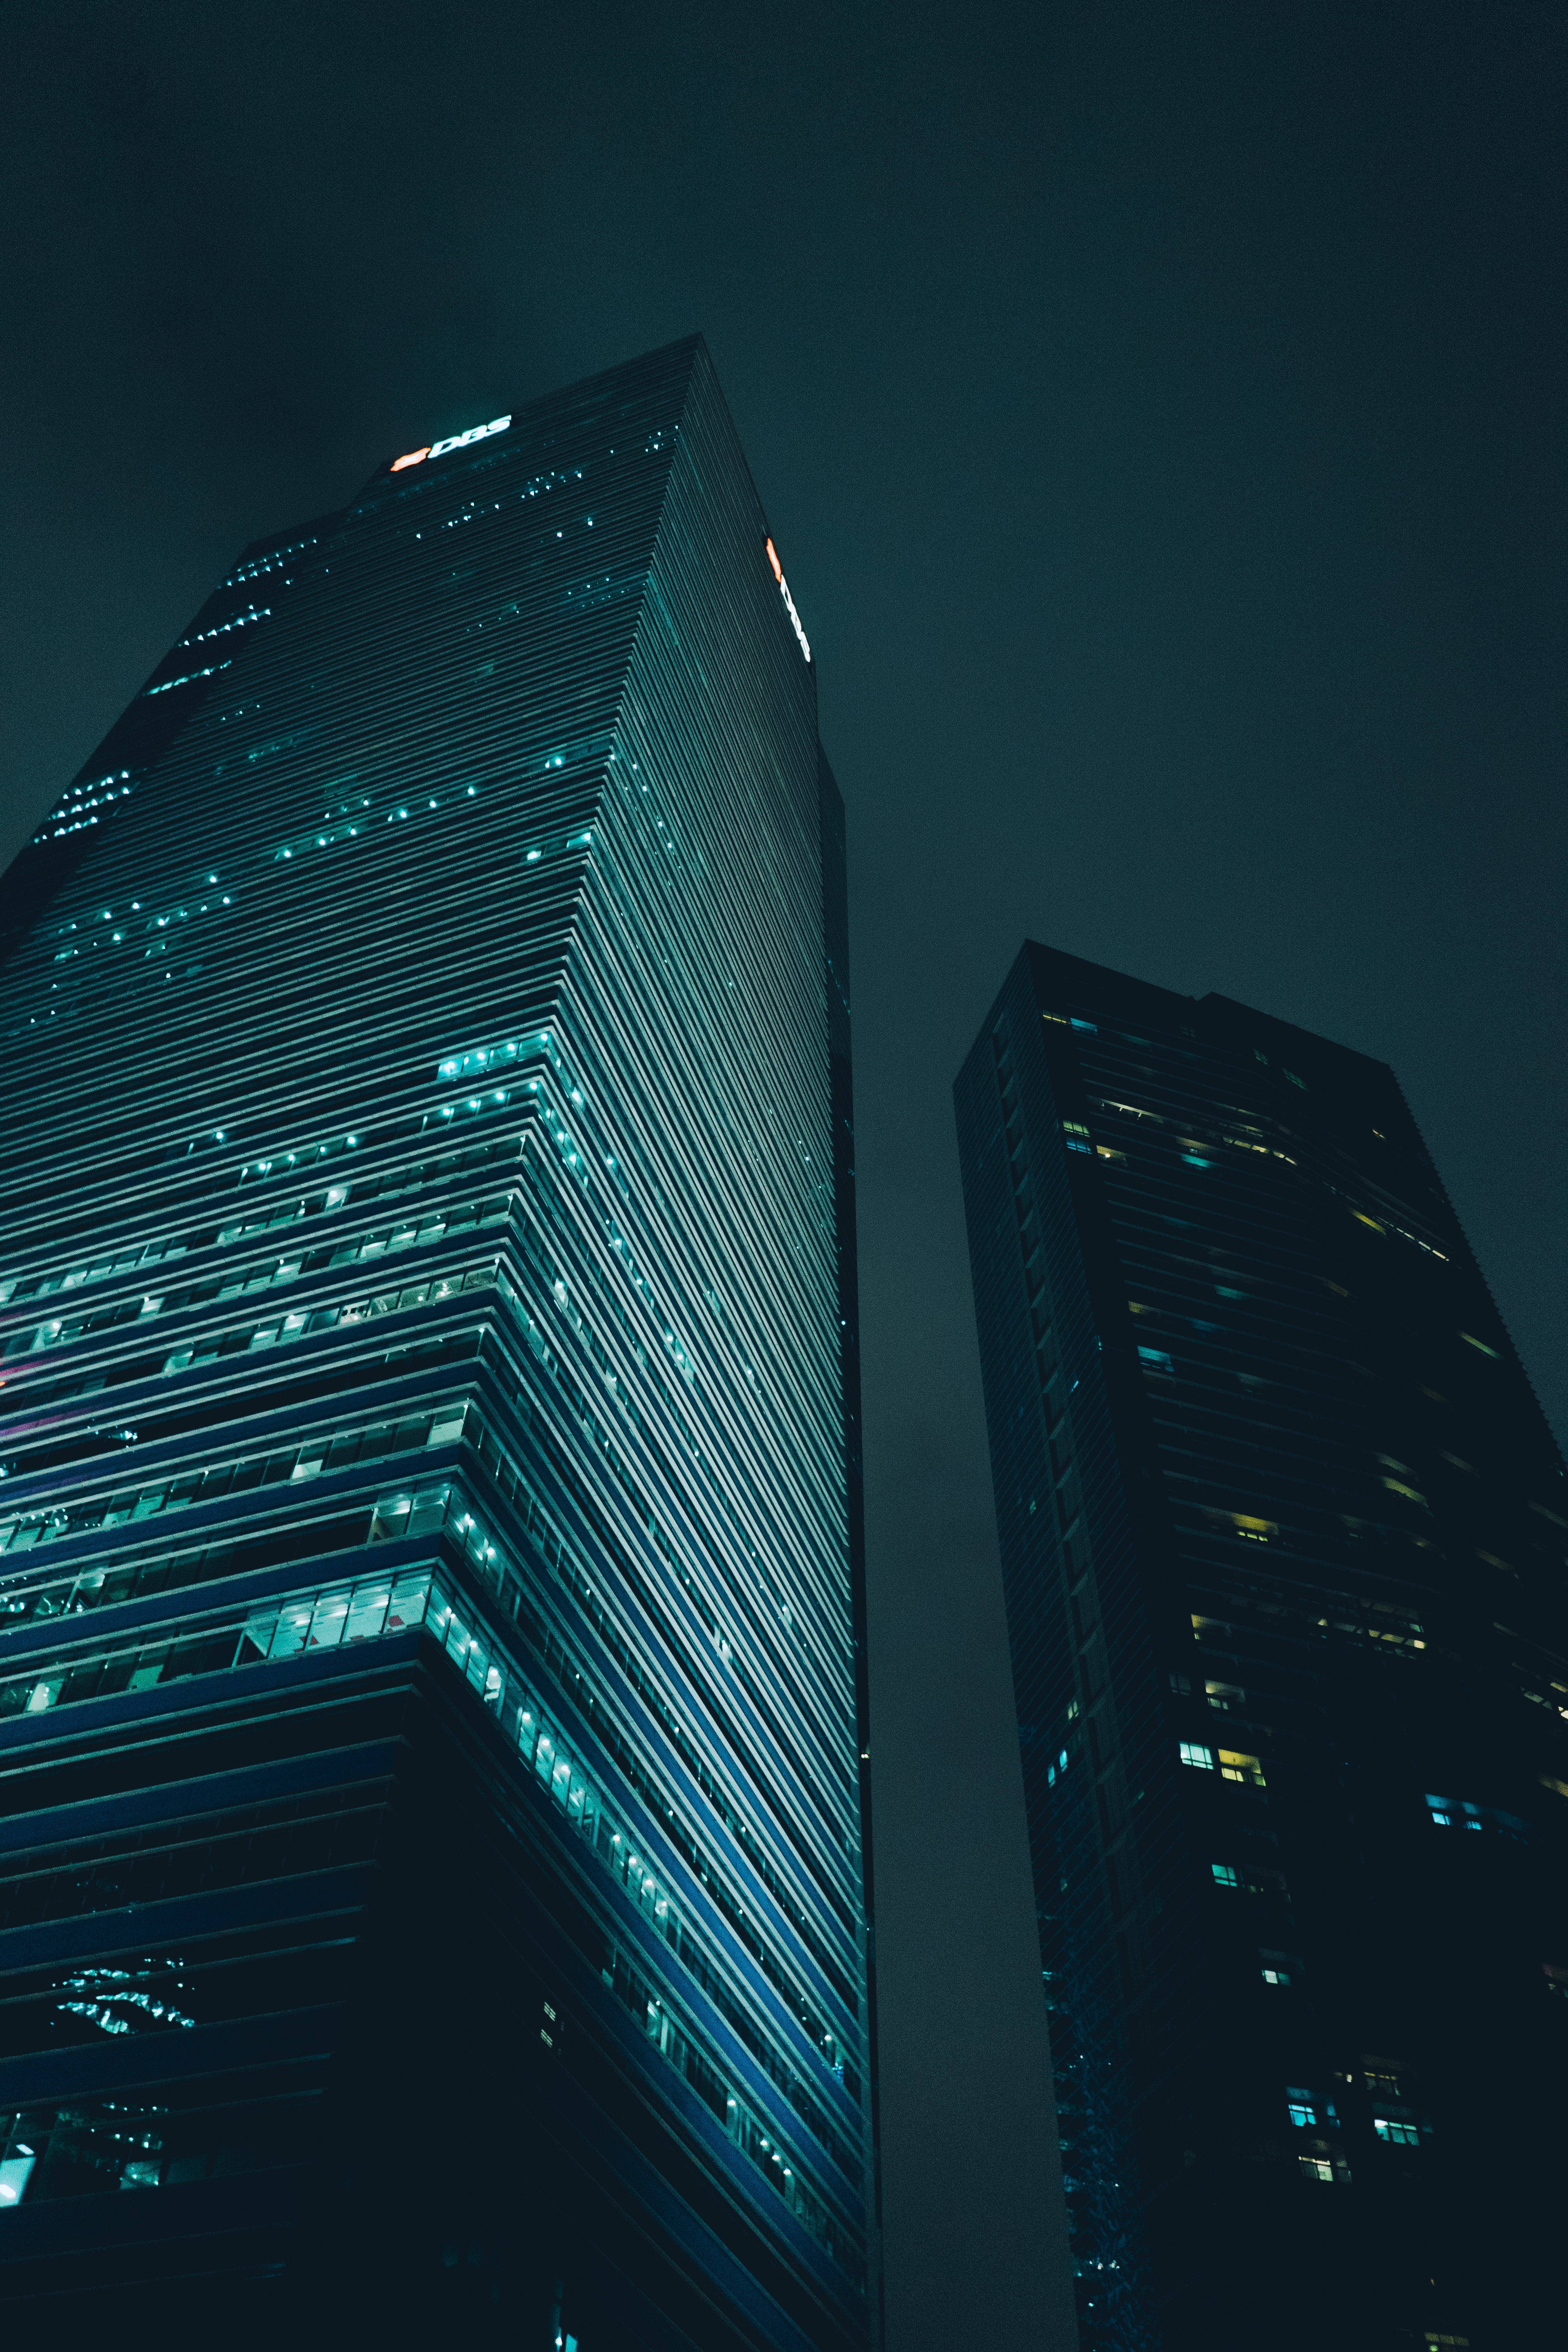 low-angle photography of high-rise buildings during nighttime